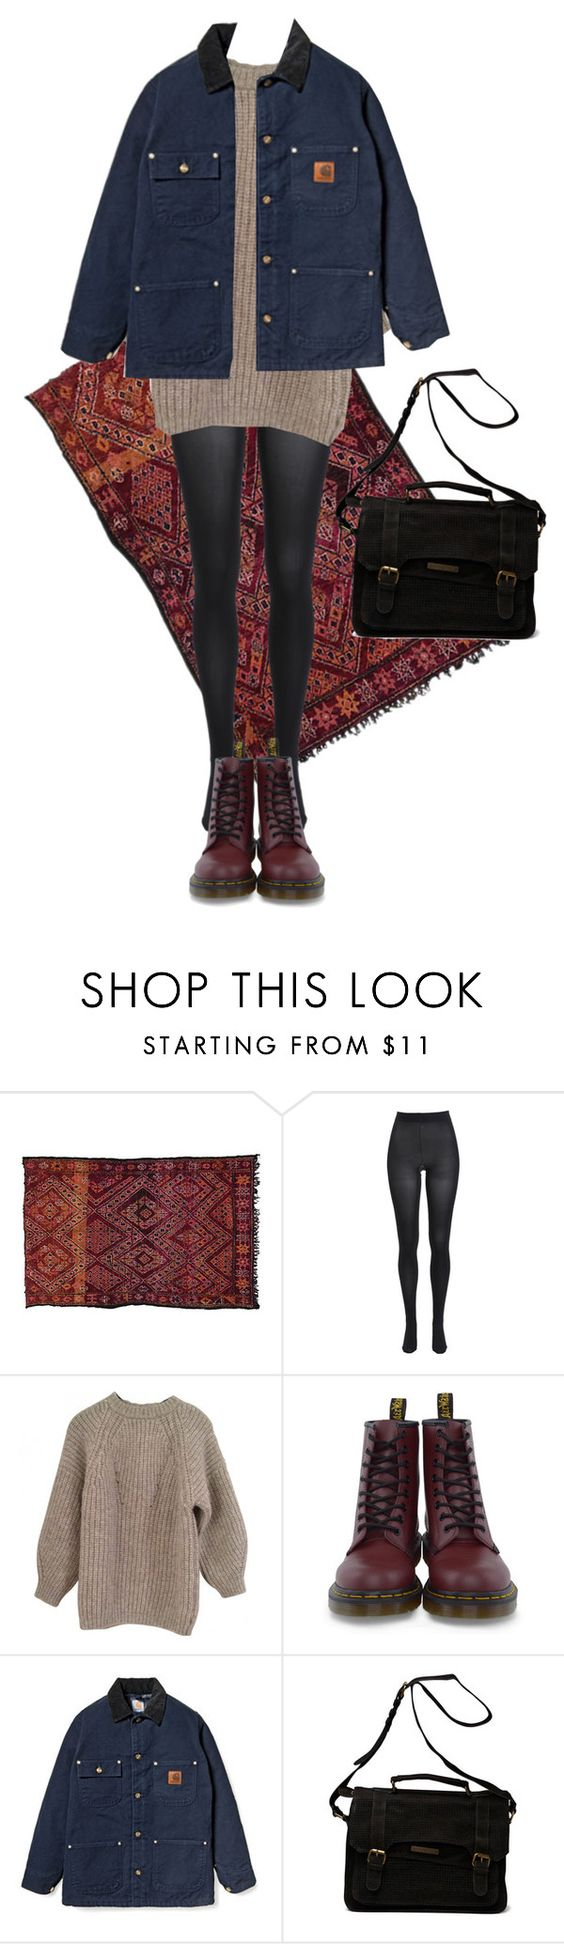 """""""Untitled #166"""" by borninthe1990s ❤ liked on Polyvore featuring Bardot, Étoile Isabel Marant, Dr. Martens, Carhartt and Friis & Company"""